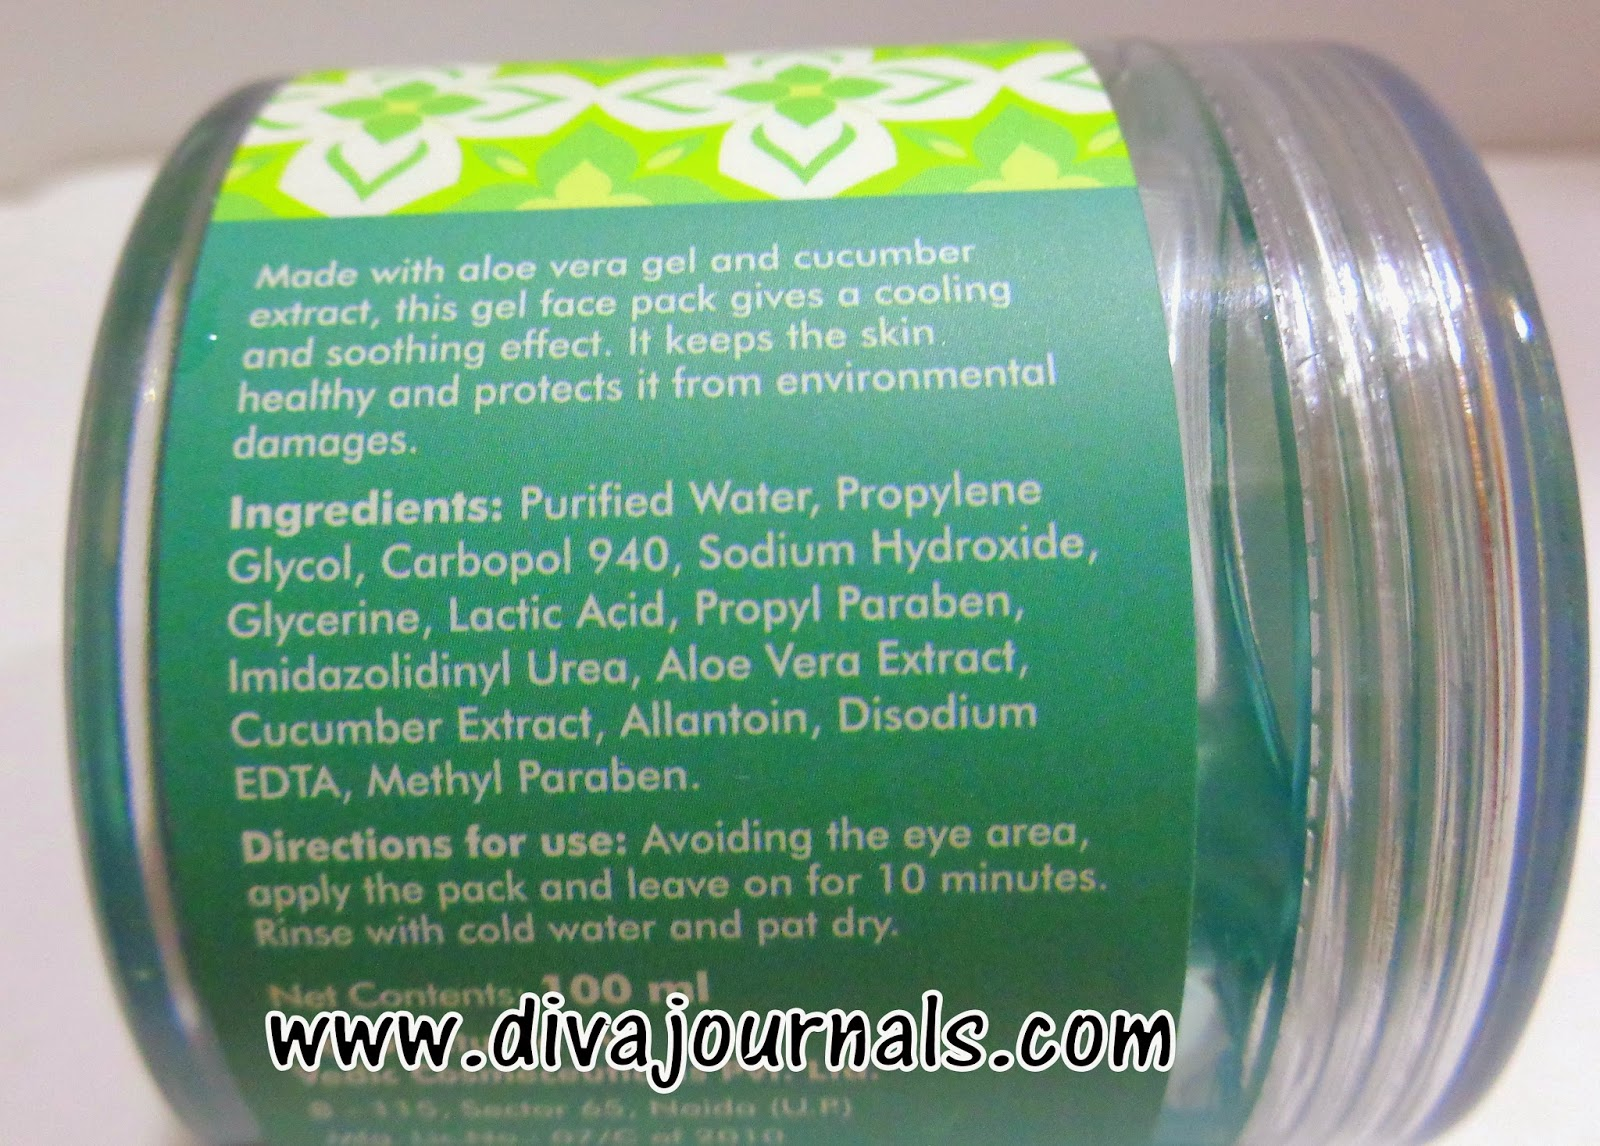 FabIndia Aloe Cucumber Gel Face Pack Review